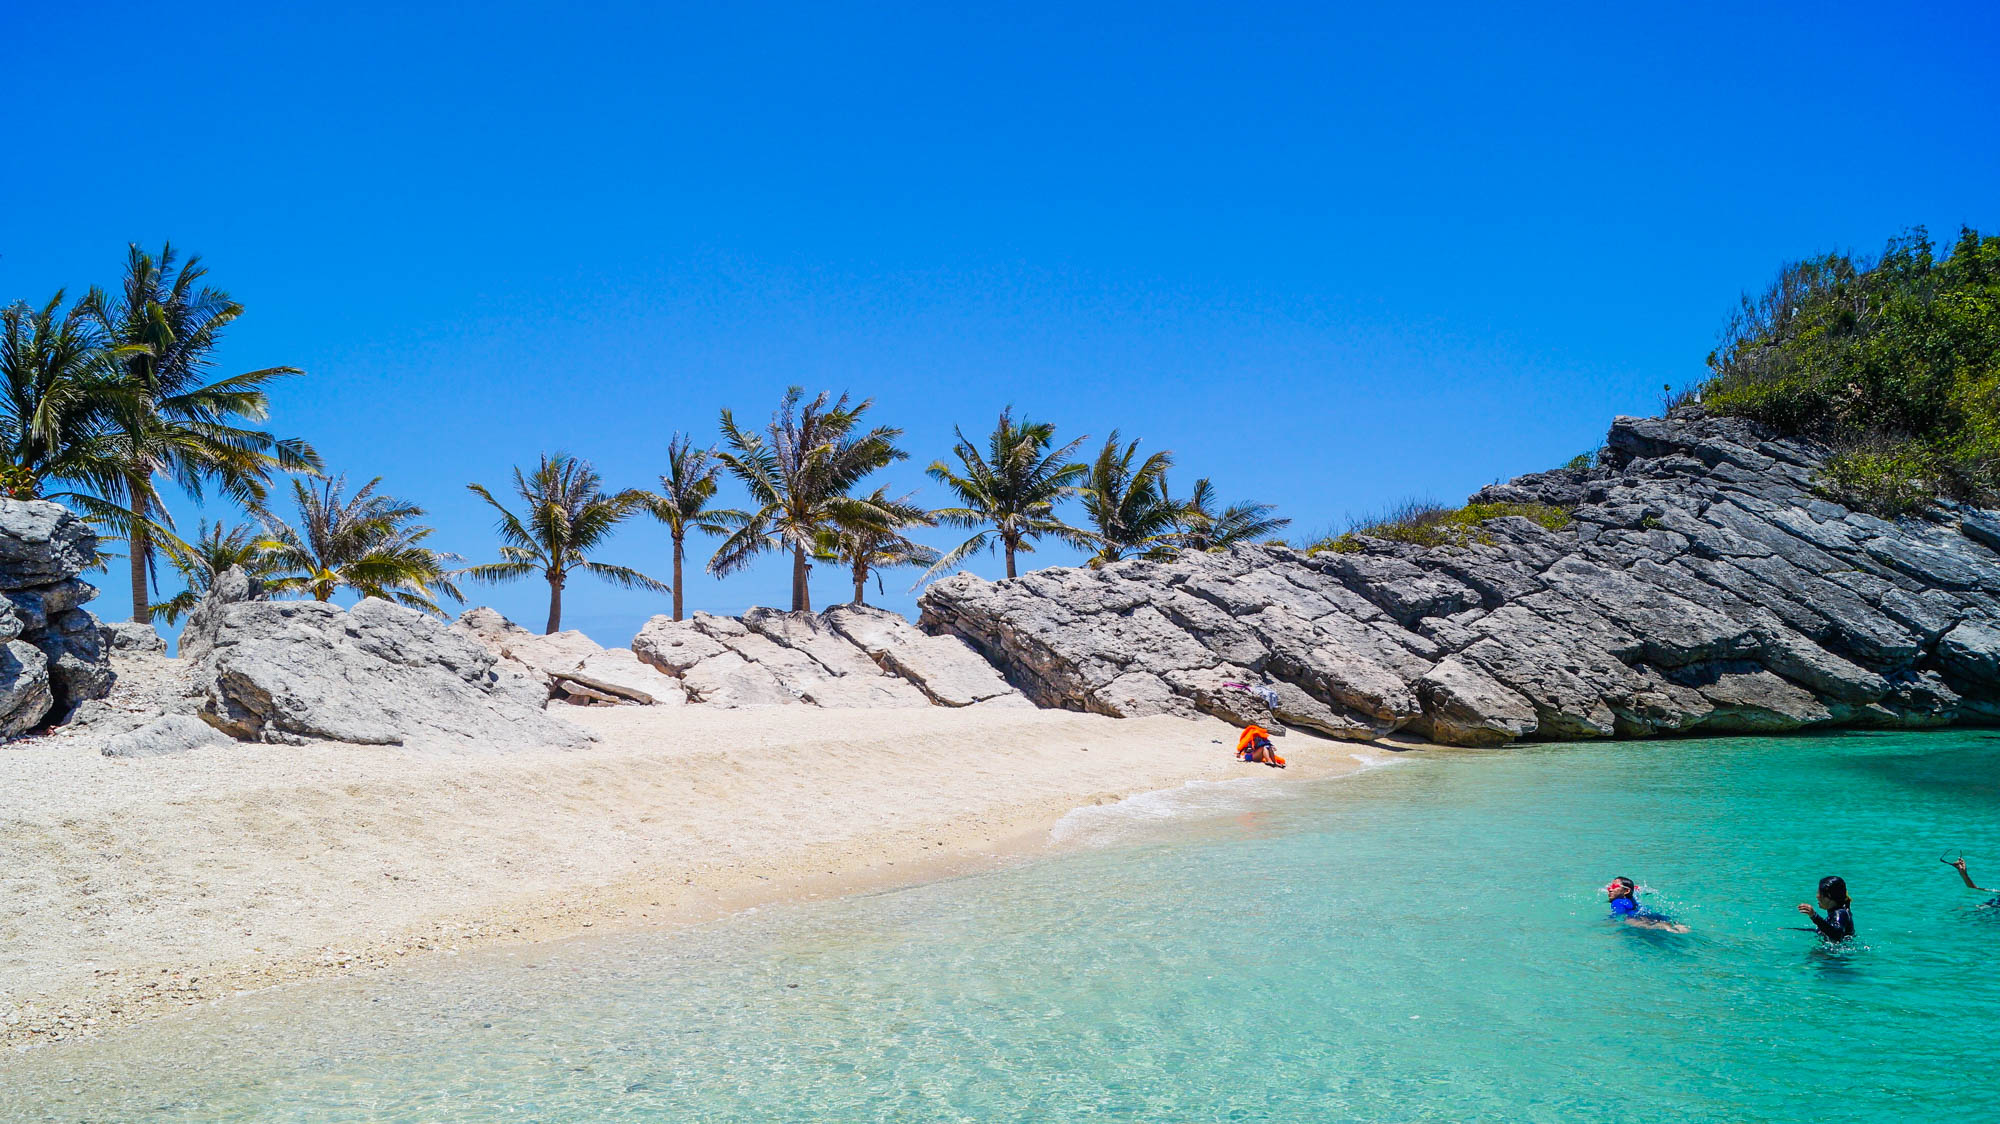 Philippines, Islas De Gigantes - Snorkelling on Antonia Island - illumelation